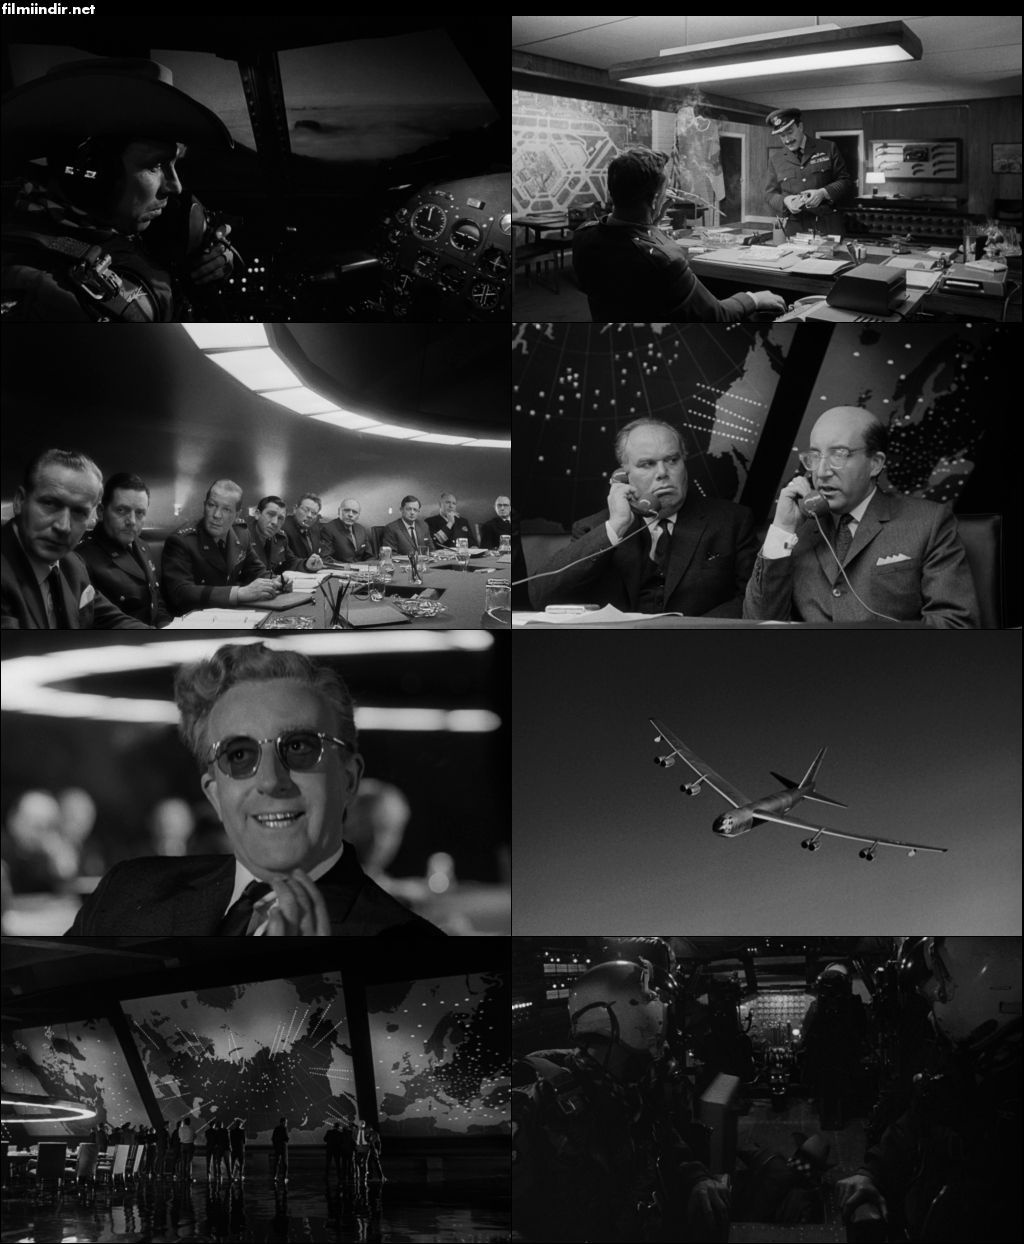 Dr. Garipaşk - Dr. Strangelove or: How I Learned to Stop Worrying and Love the Bomb (1964) türkçe dublaj film indir